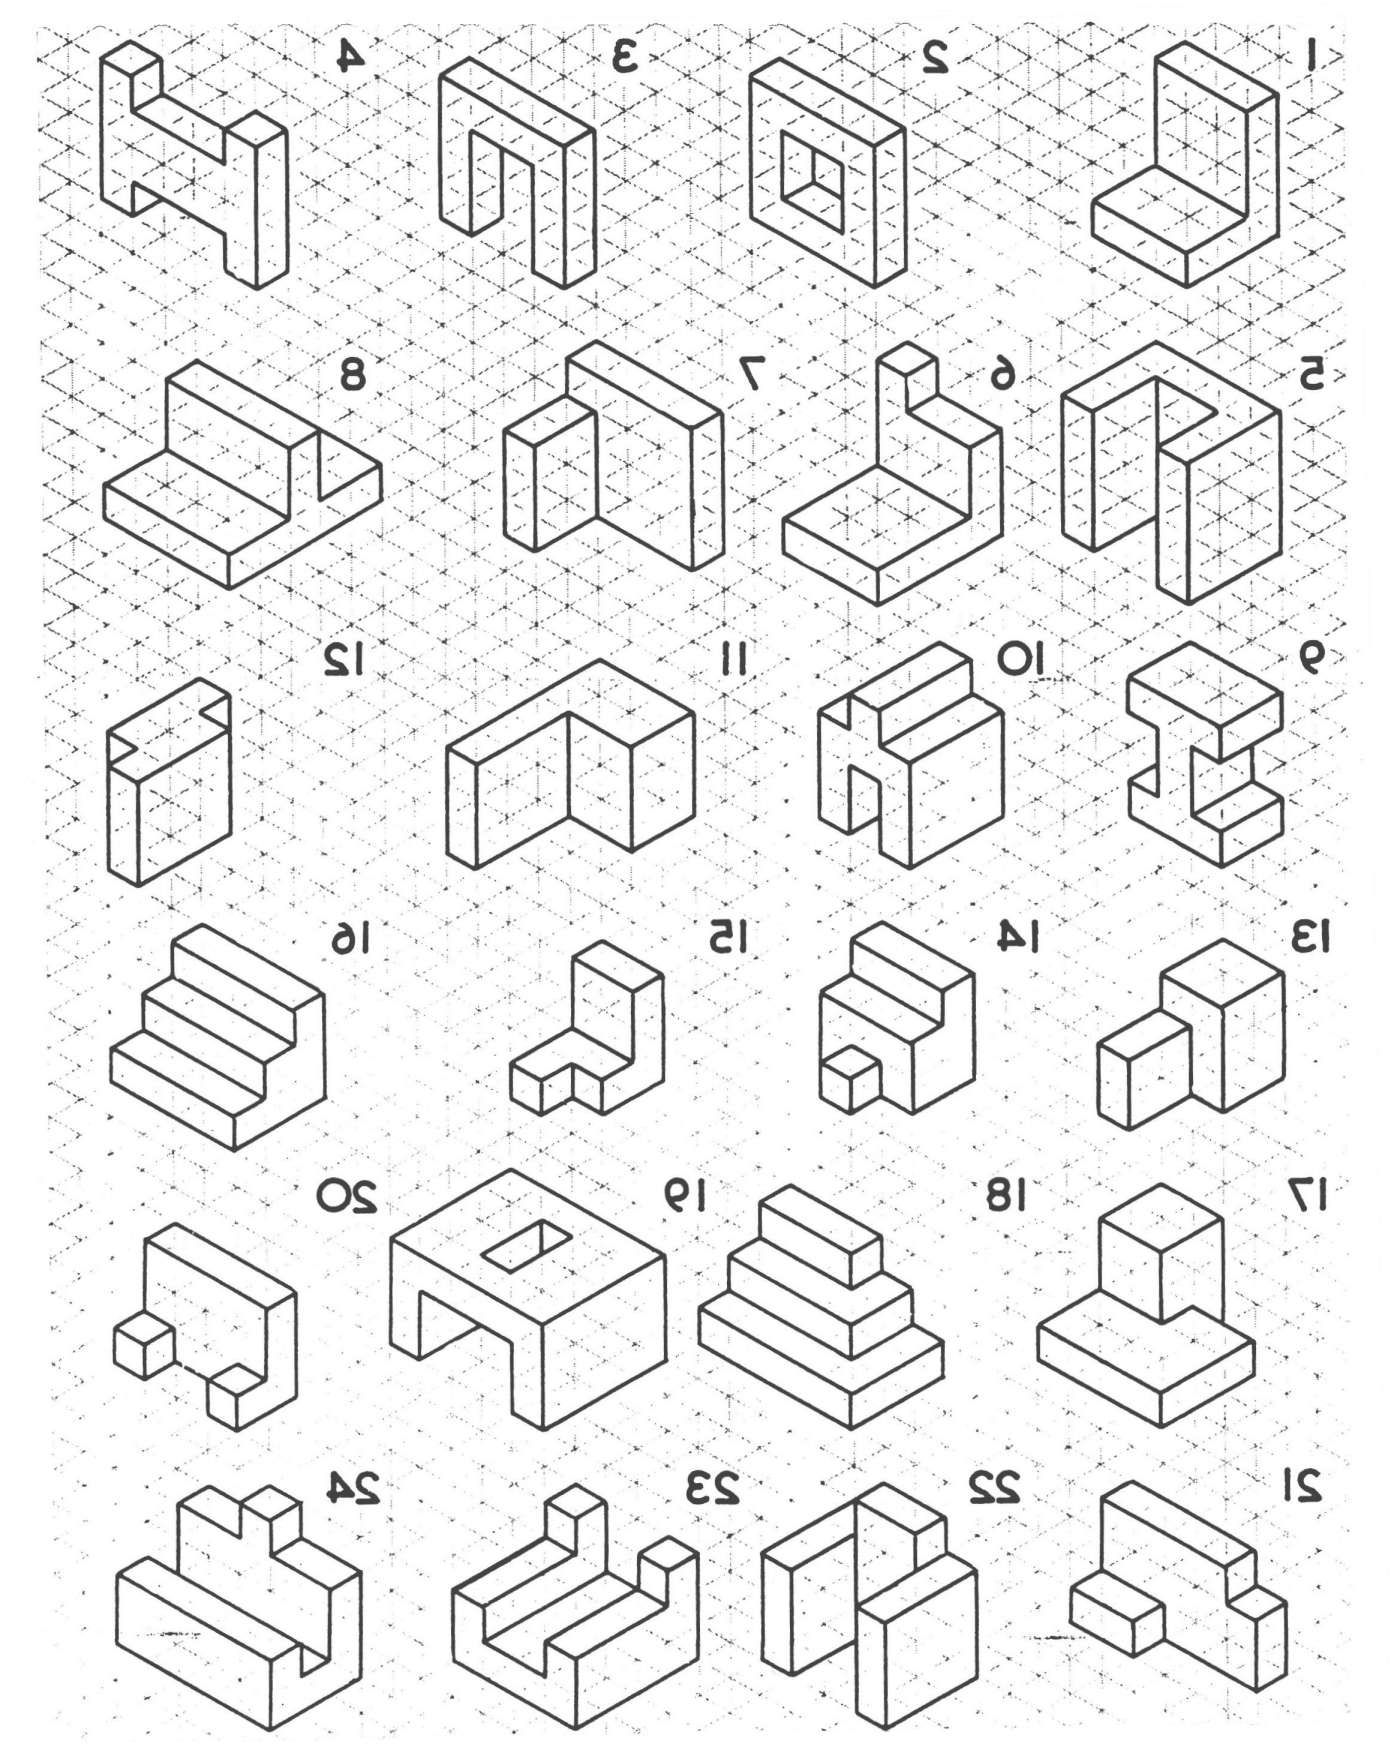 hight resolution of Isometric Drawings Worksheets   Printable Worksheets and Activities for  Teachers